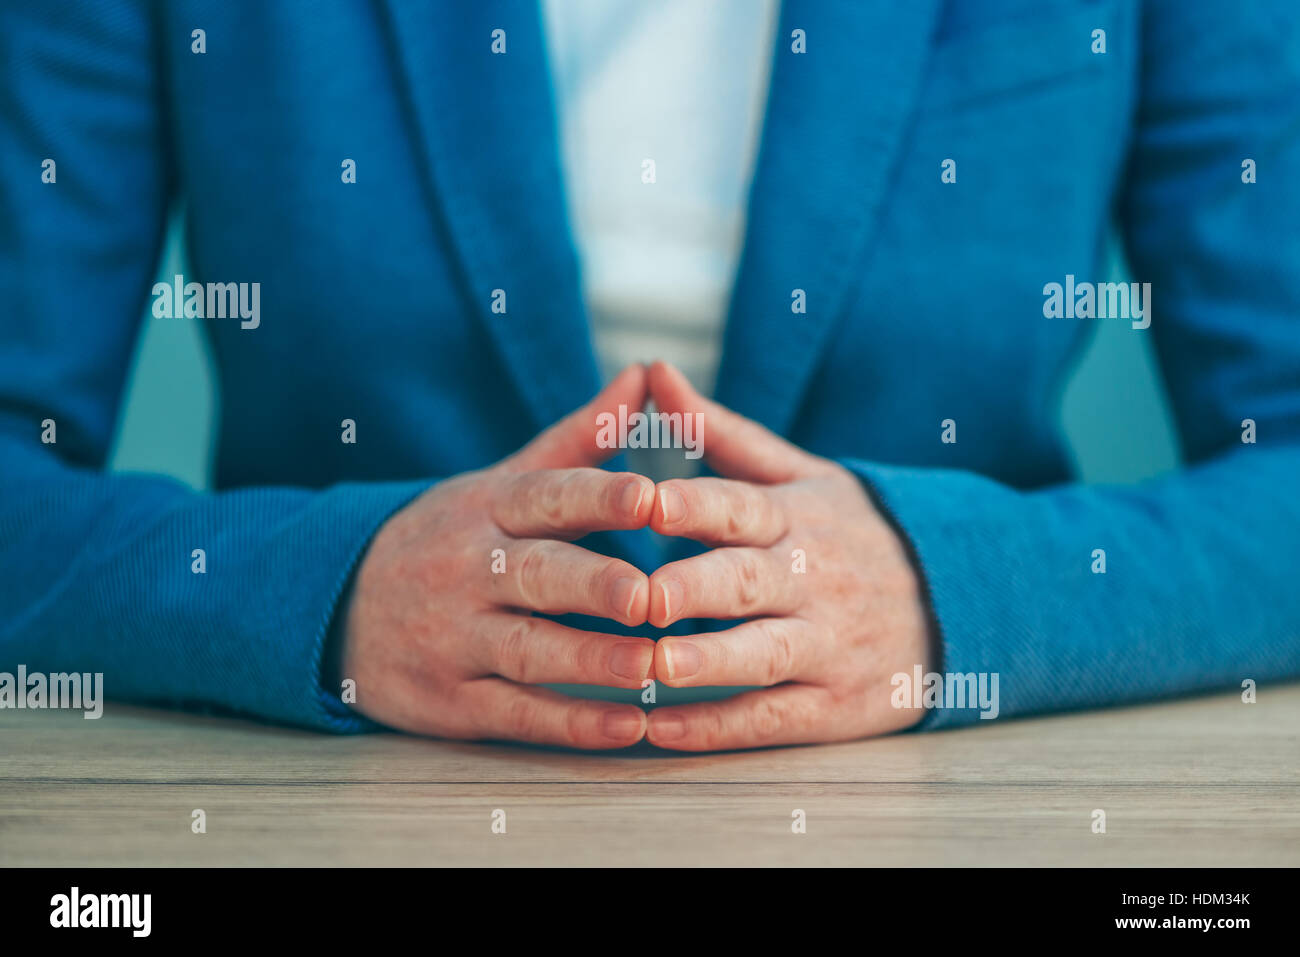 Businesswoman body language for confidence and self-esteem, hands with steepled fingers on office desk - Stock Image